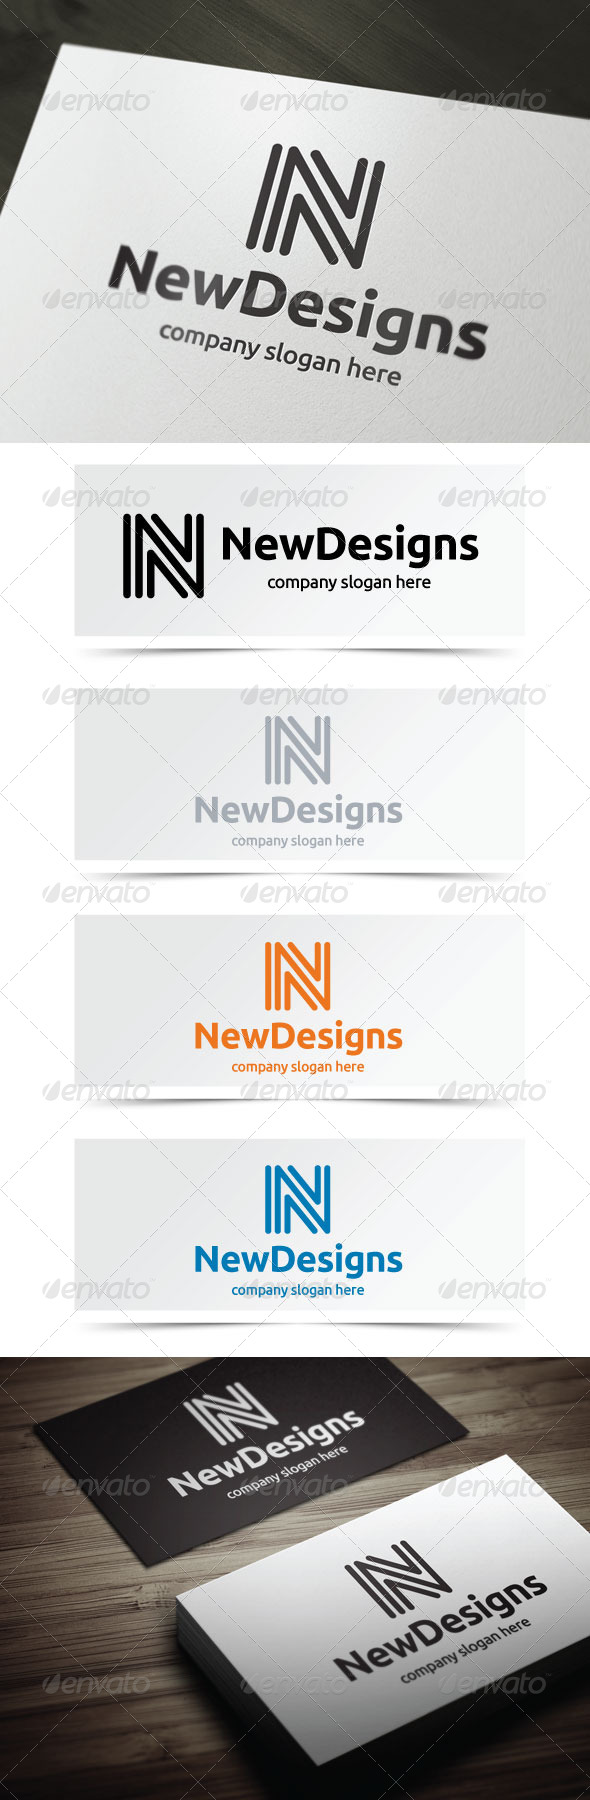 GraphicRiver New Designs 5069247